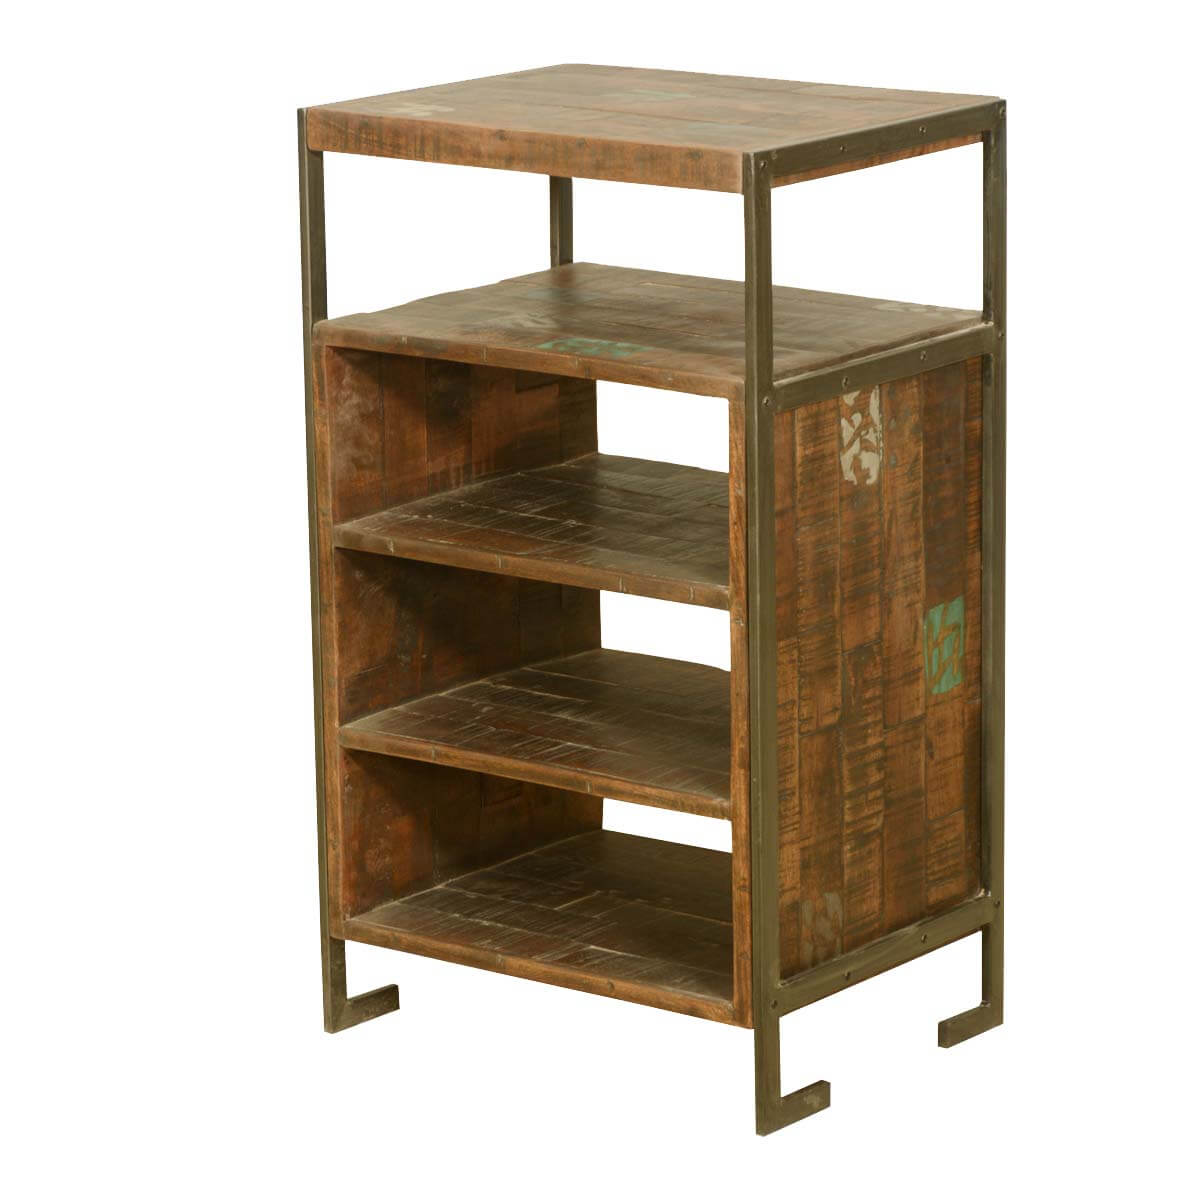 Rustic Reclaimed Wood Iron Frame 2 Tier End Table with 3 Shelves